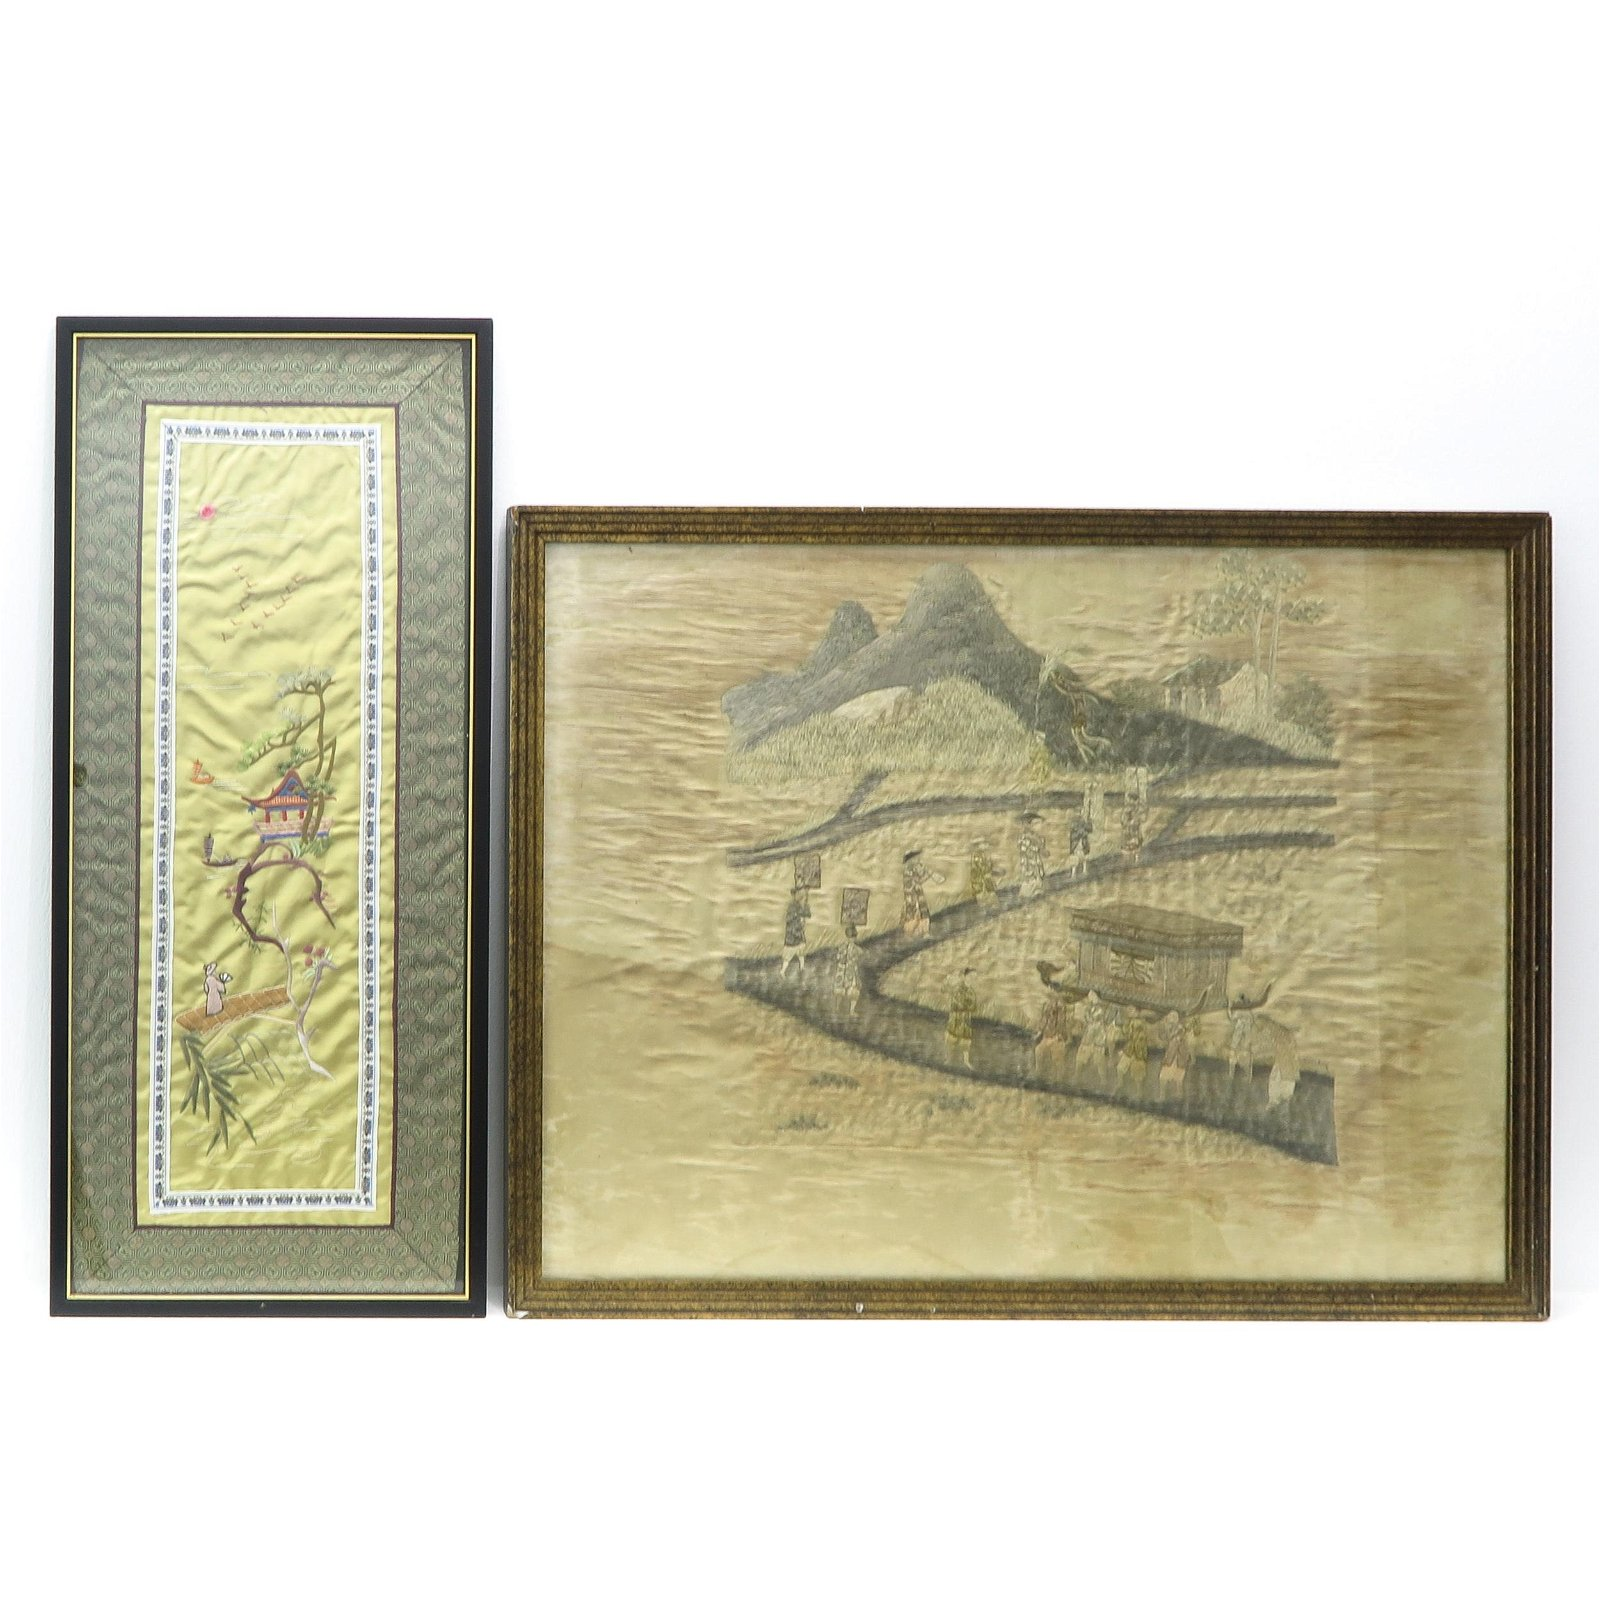 Two Framed Silk Embroidered Textiles